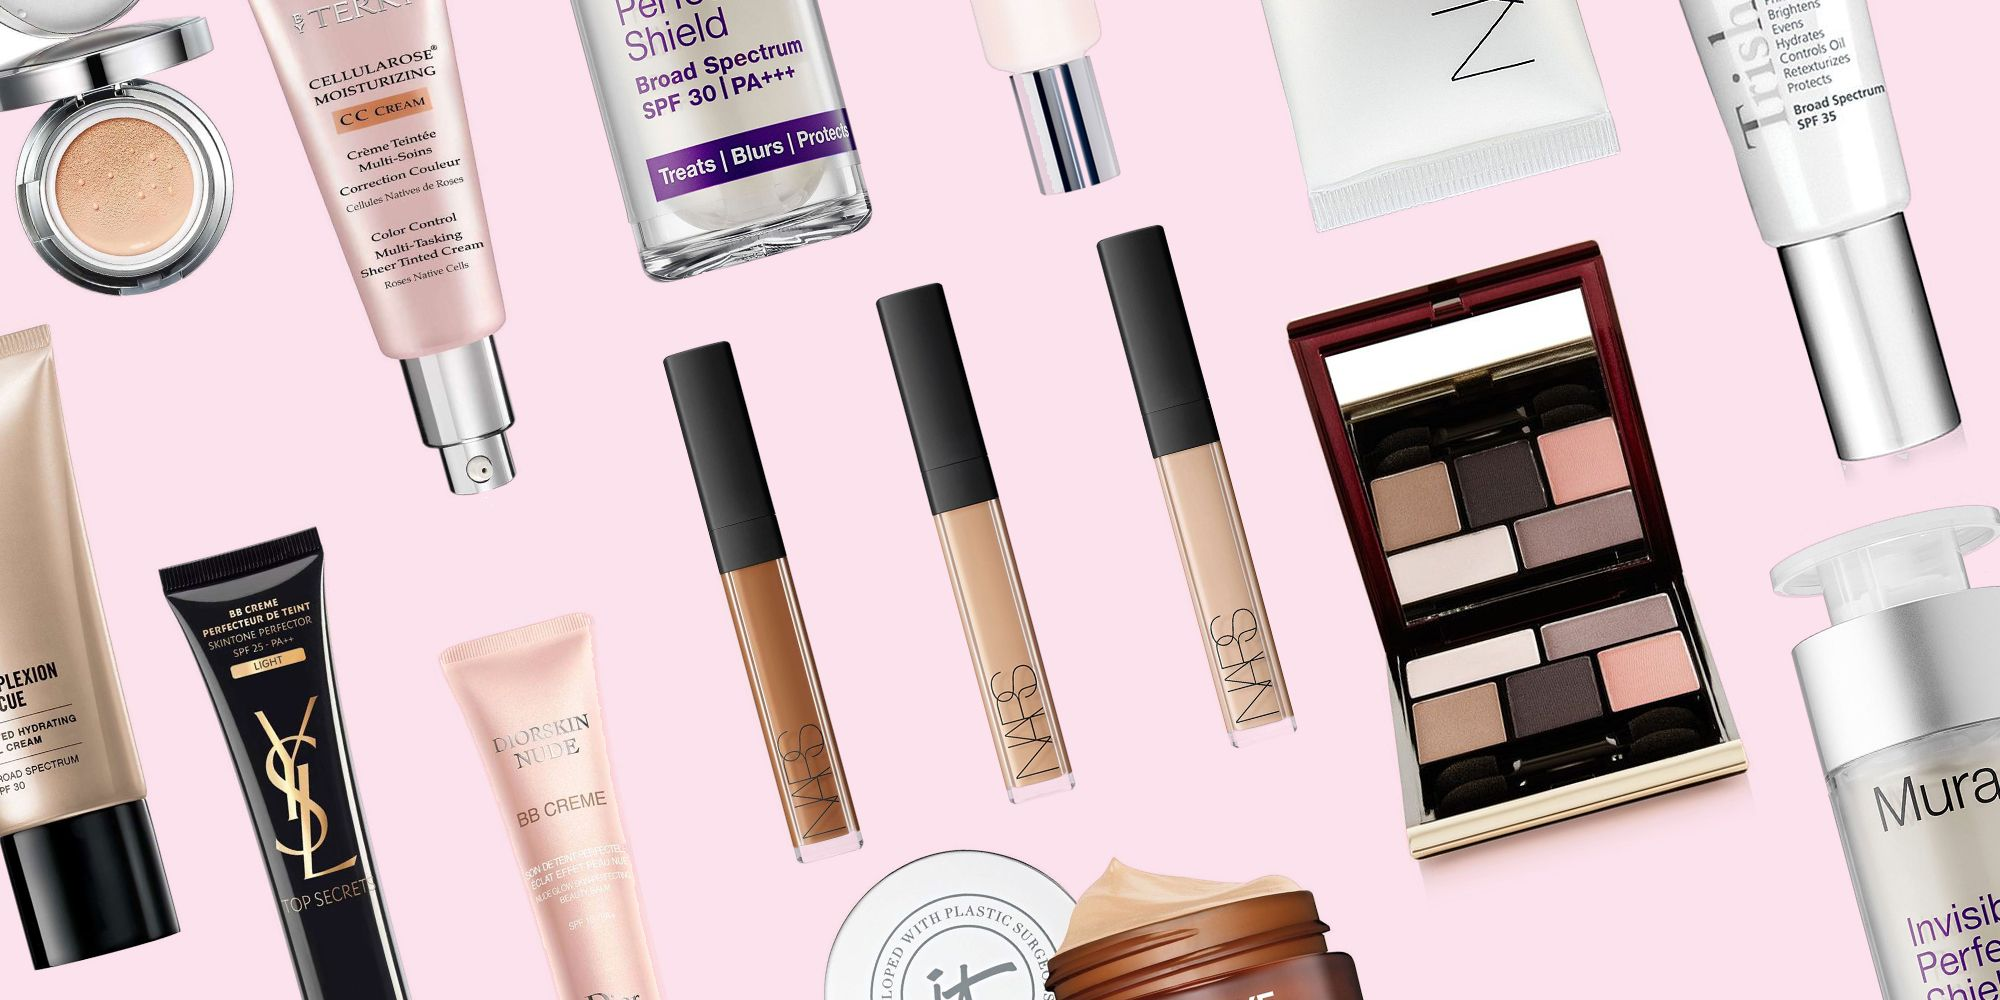 Best Makeup for Older Women - 25 Makeup Tips and Products for Mature